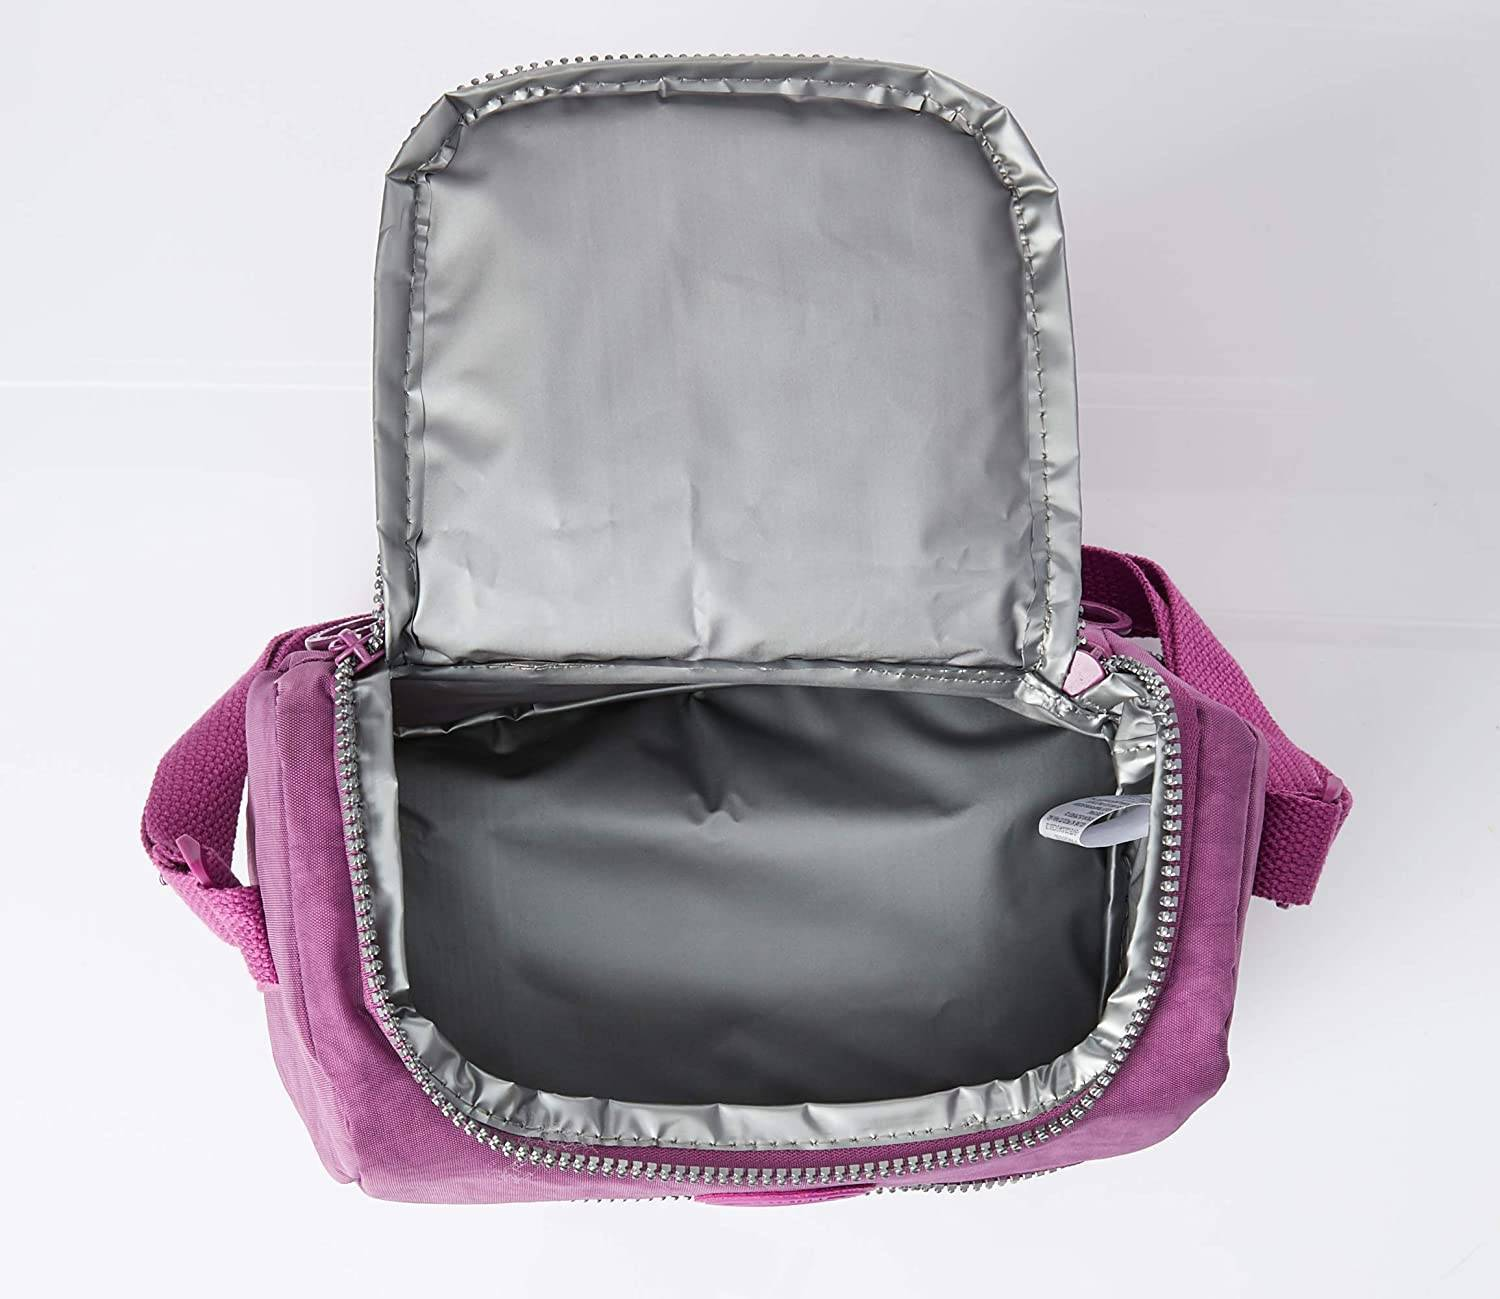 BOLSA TÉRMICA / LANCHEIRA TACTEL UP4YOU ORIGINAL - ROXA - PRIMEIRA CLASSE MALAS